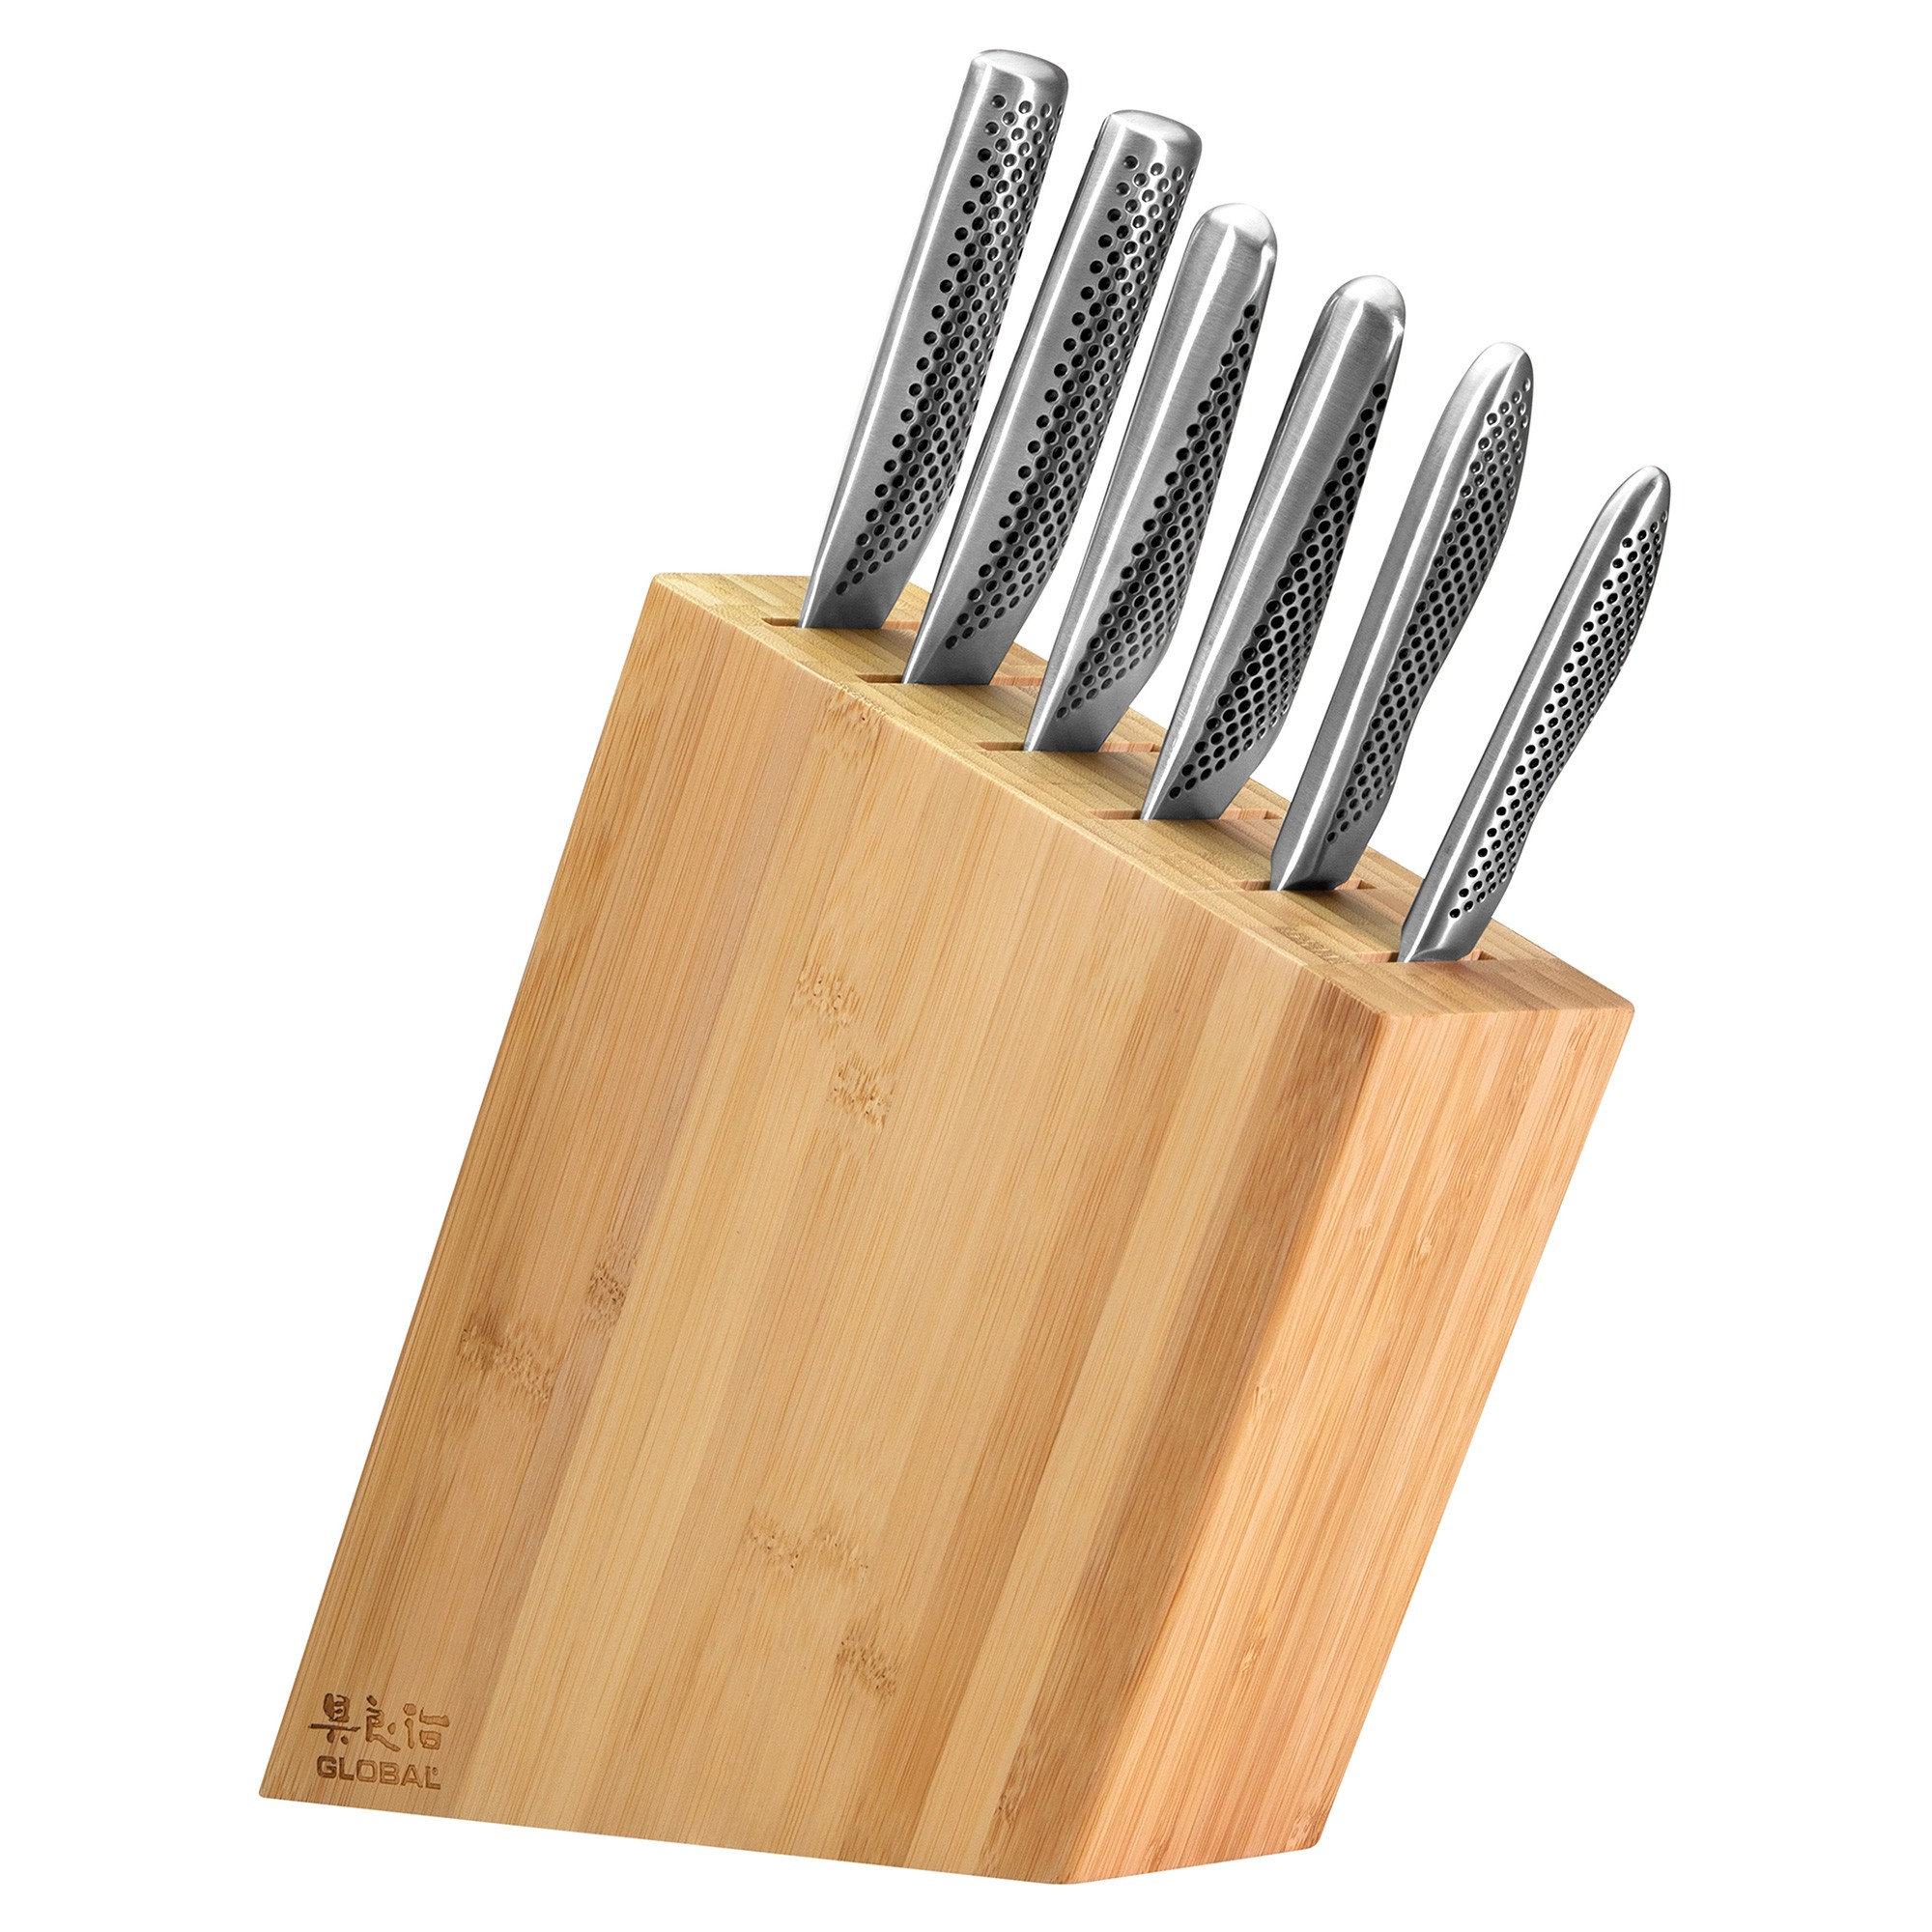 Global Kyoto 7Piece Knife Block Set, Bamboo